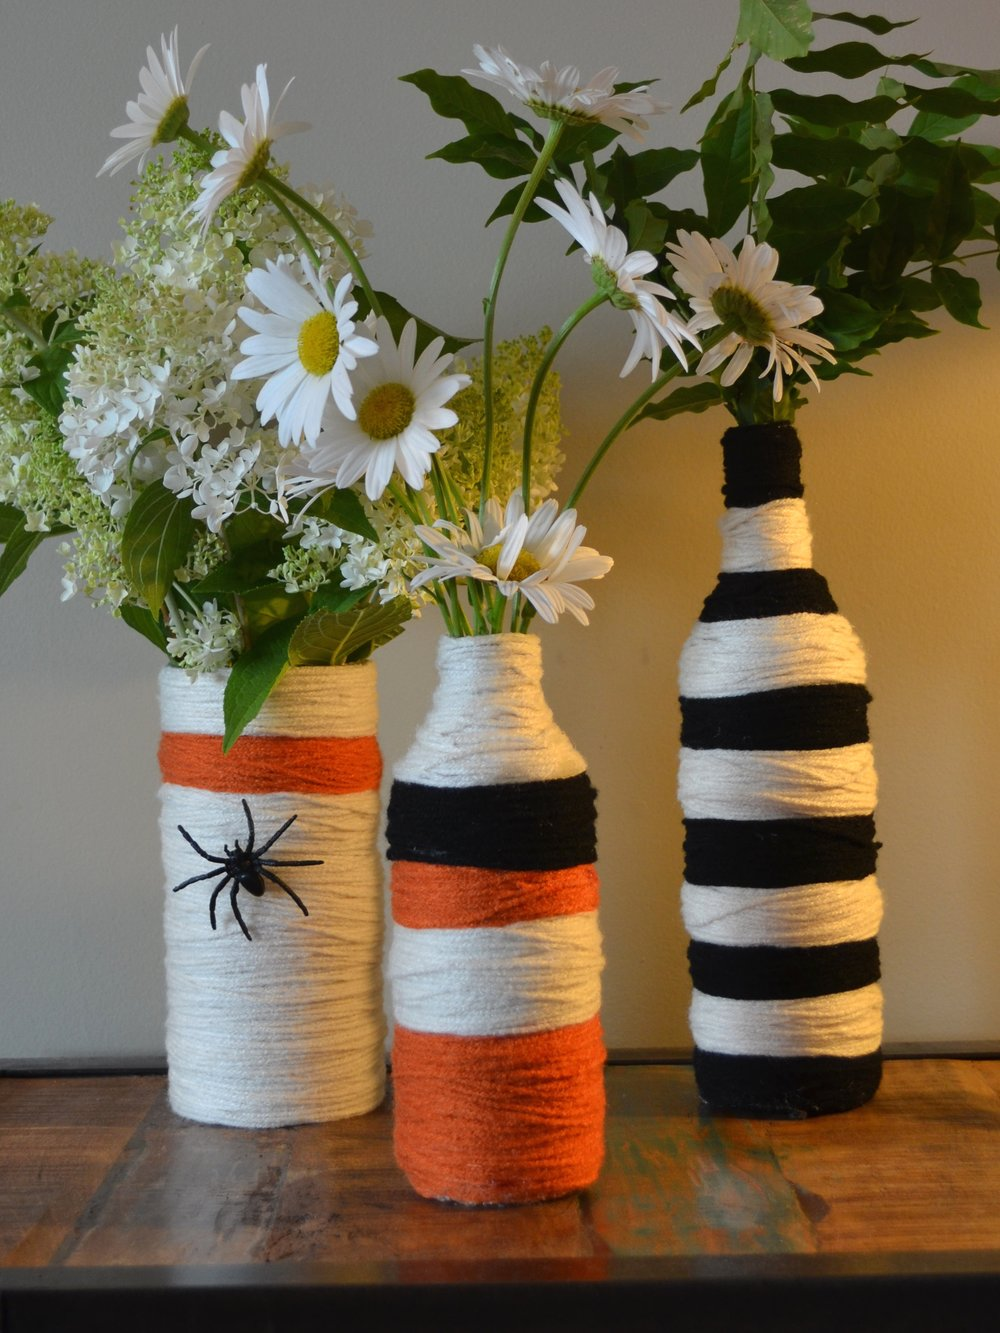 Don't forget the flowers! These Halloween craft recycled bottles and jars are so fun to make. I just used yarns and a hot glue gun. If you are going to a party -- it makes a great gift and some awesome decorations.